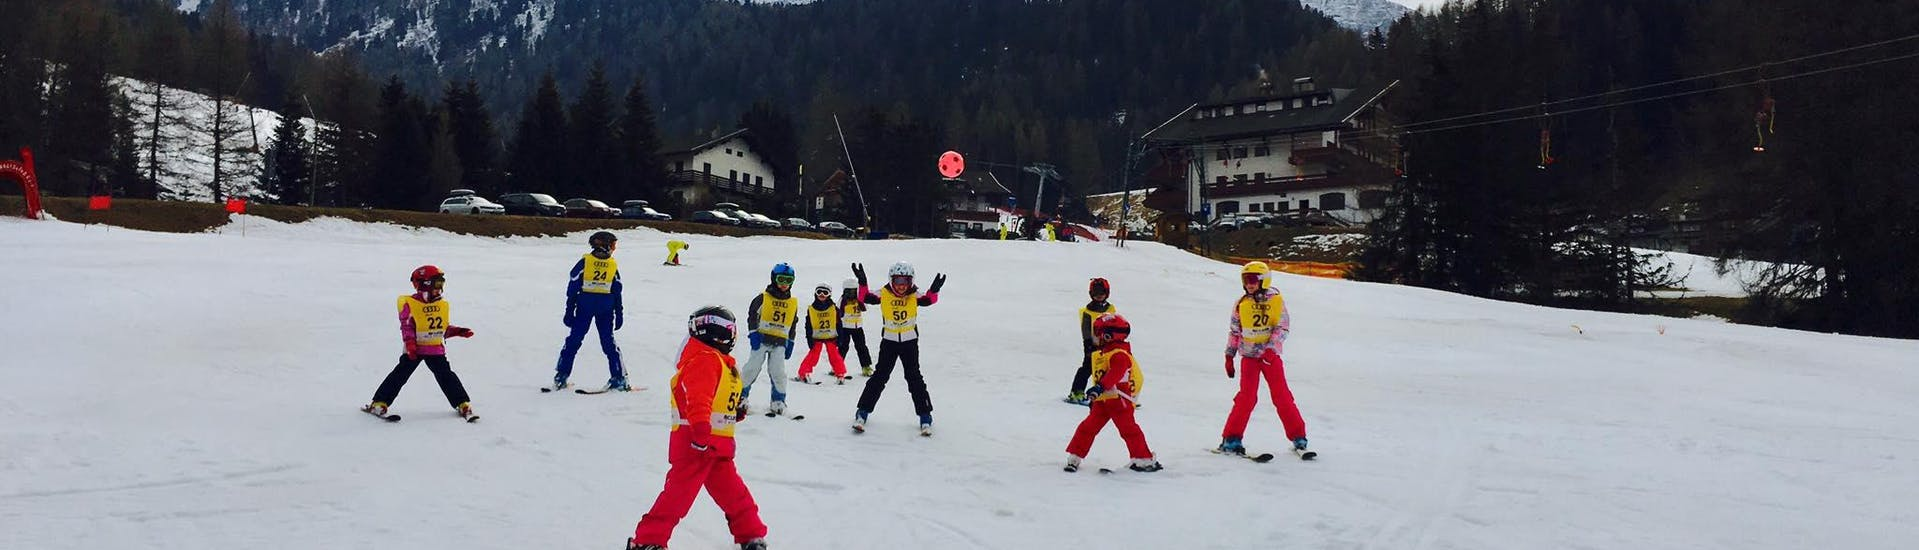 """Kids Ski Lessons (4-12 y.) """"Half Day"""" for All Levels with Scuola Sci 2000 Selva - Hero image"""